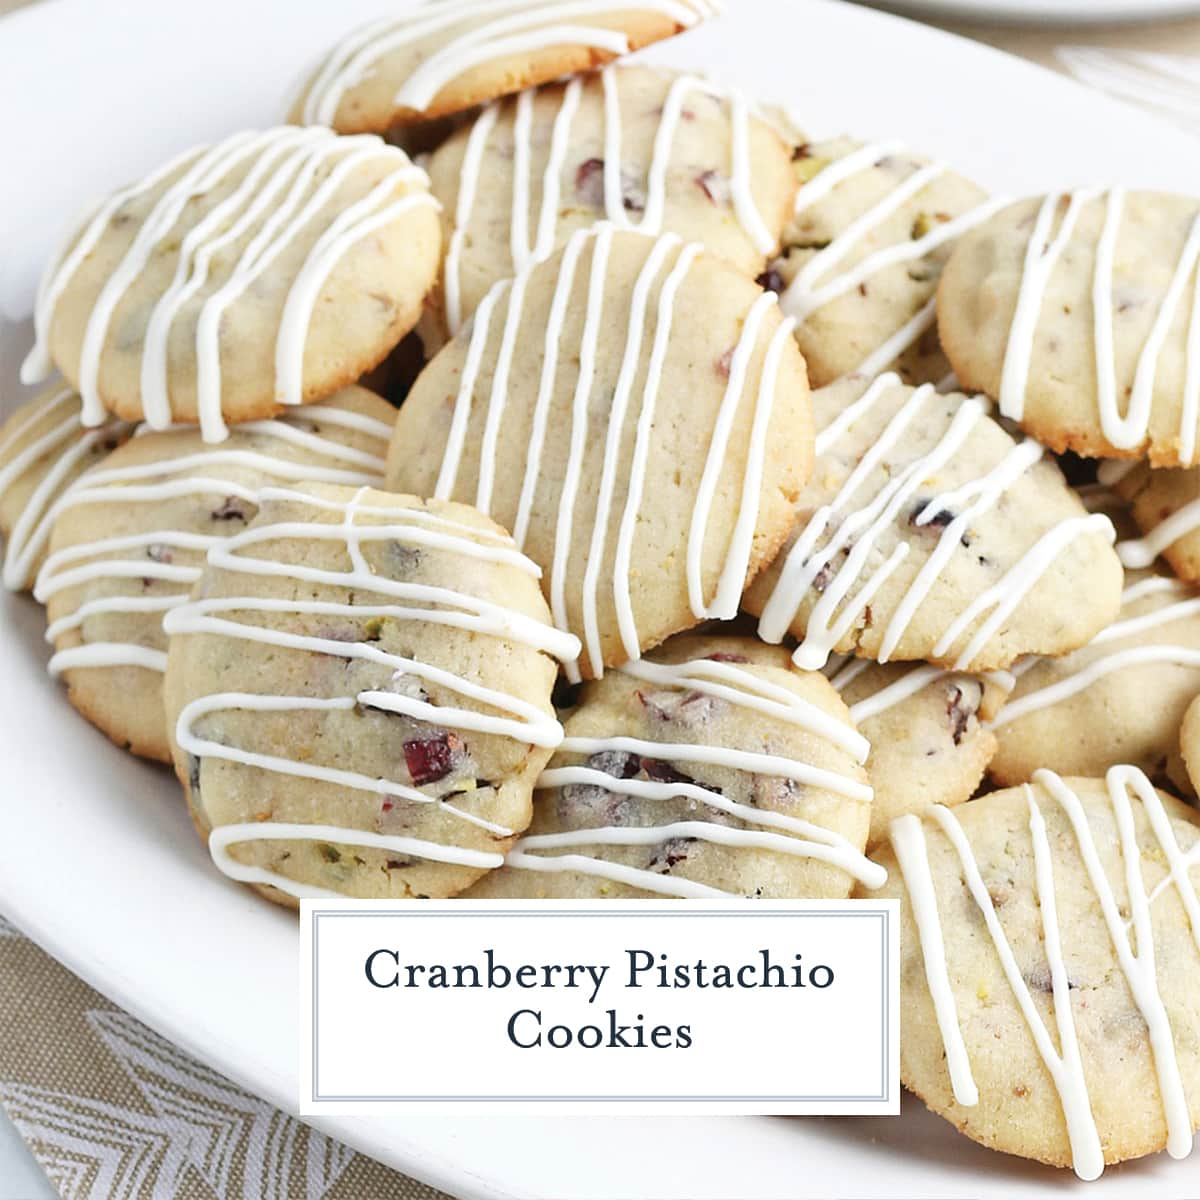 cranberry pistachio cookies on a white serving platter